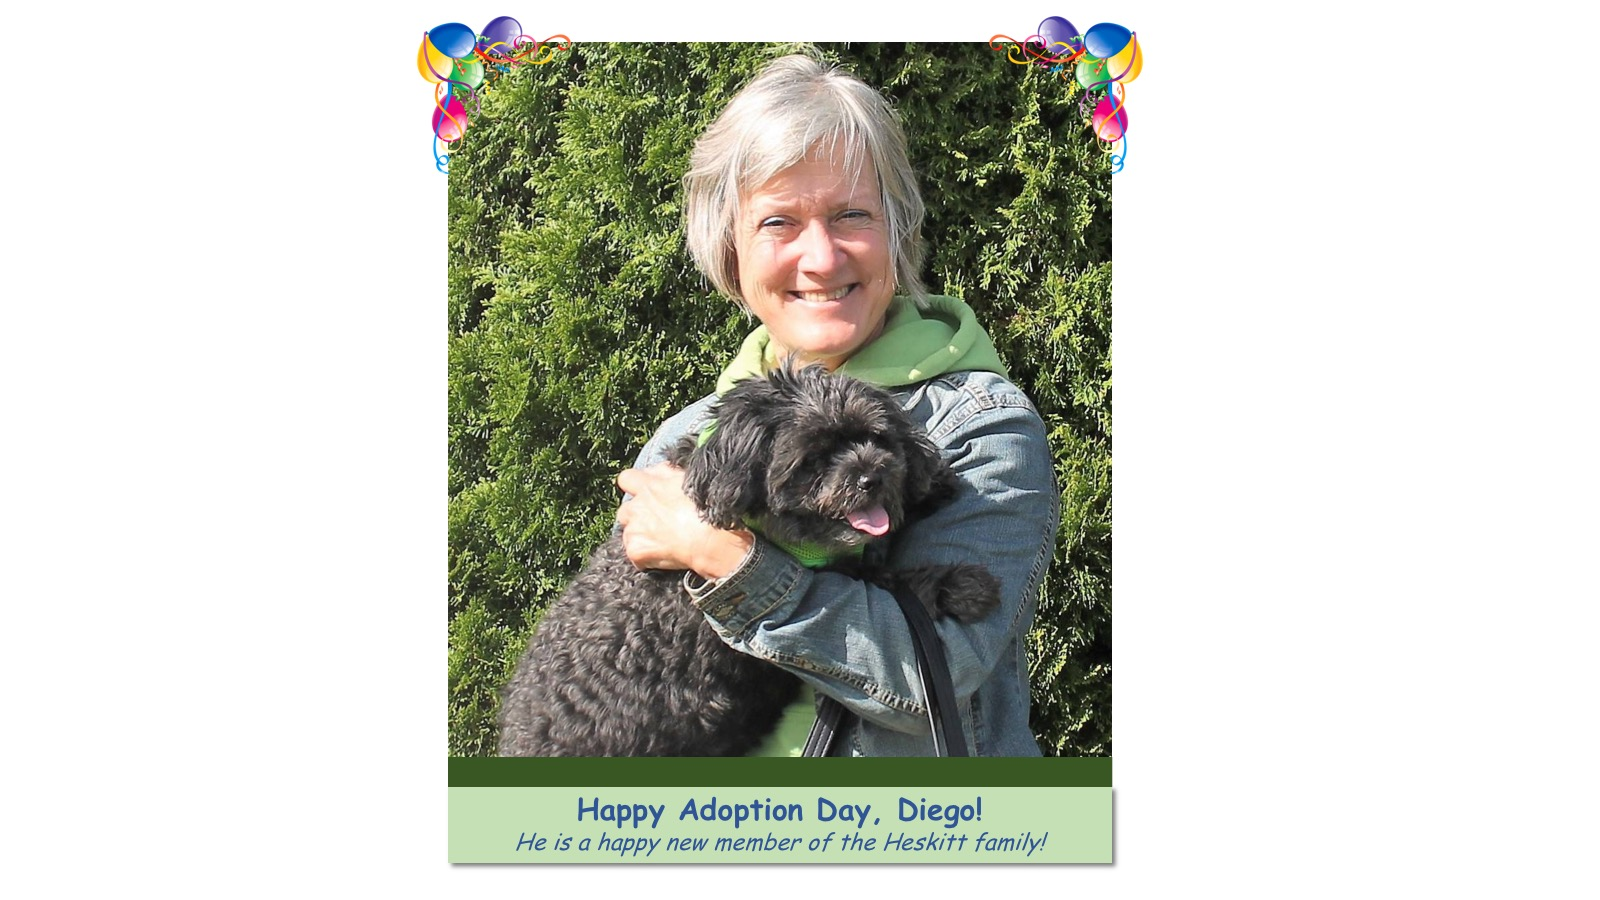 Diego_Adoption_Photo19616.jpg